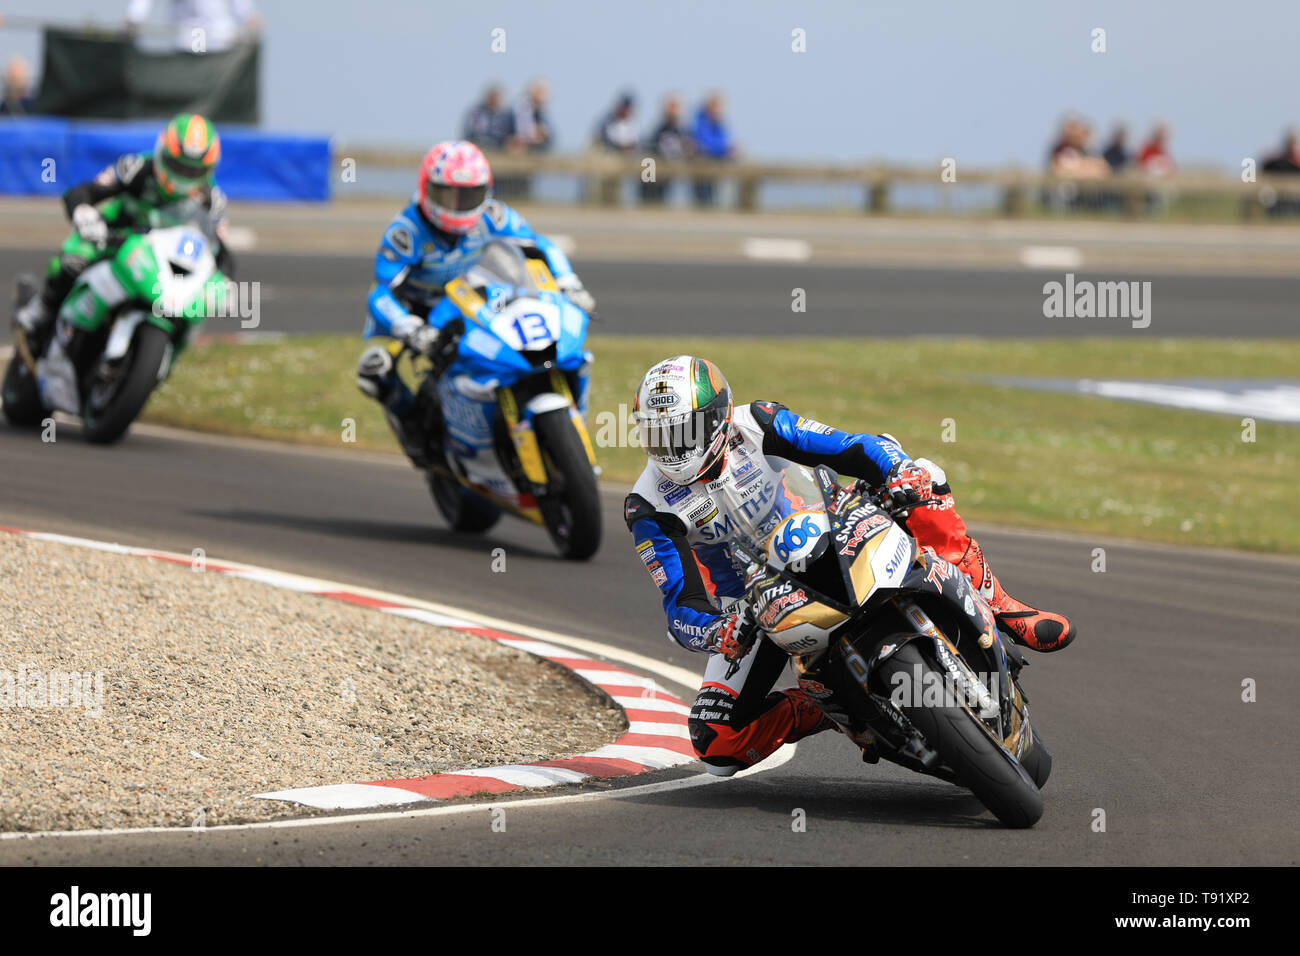 Portrush, Northern Ireland. 16th May, 2019. International North West 200 Motorcycle road racing, Thursday practice and evening racing; Peter Hickman goes 4th on the Trooper Beer By Smiths Racing Triumph during the SuperSport qualifying session Credit: Action Plus Sports/Alamy Live News - Stock Image